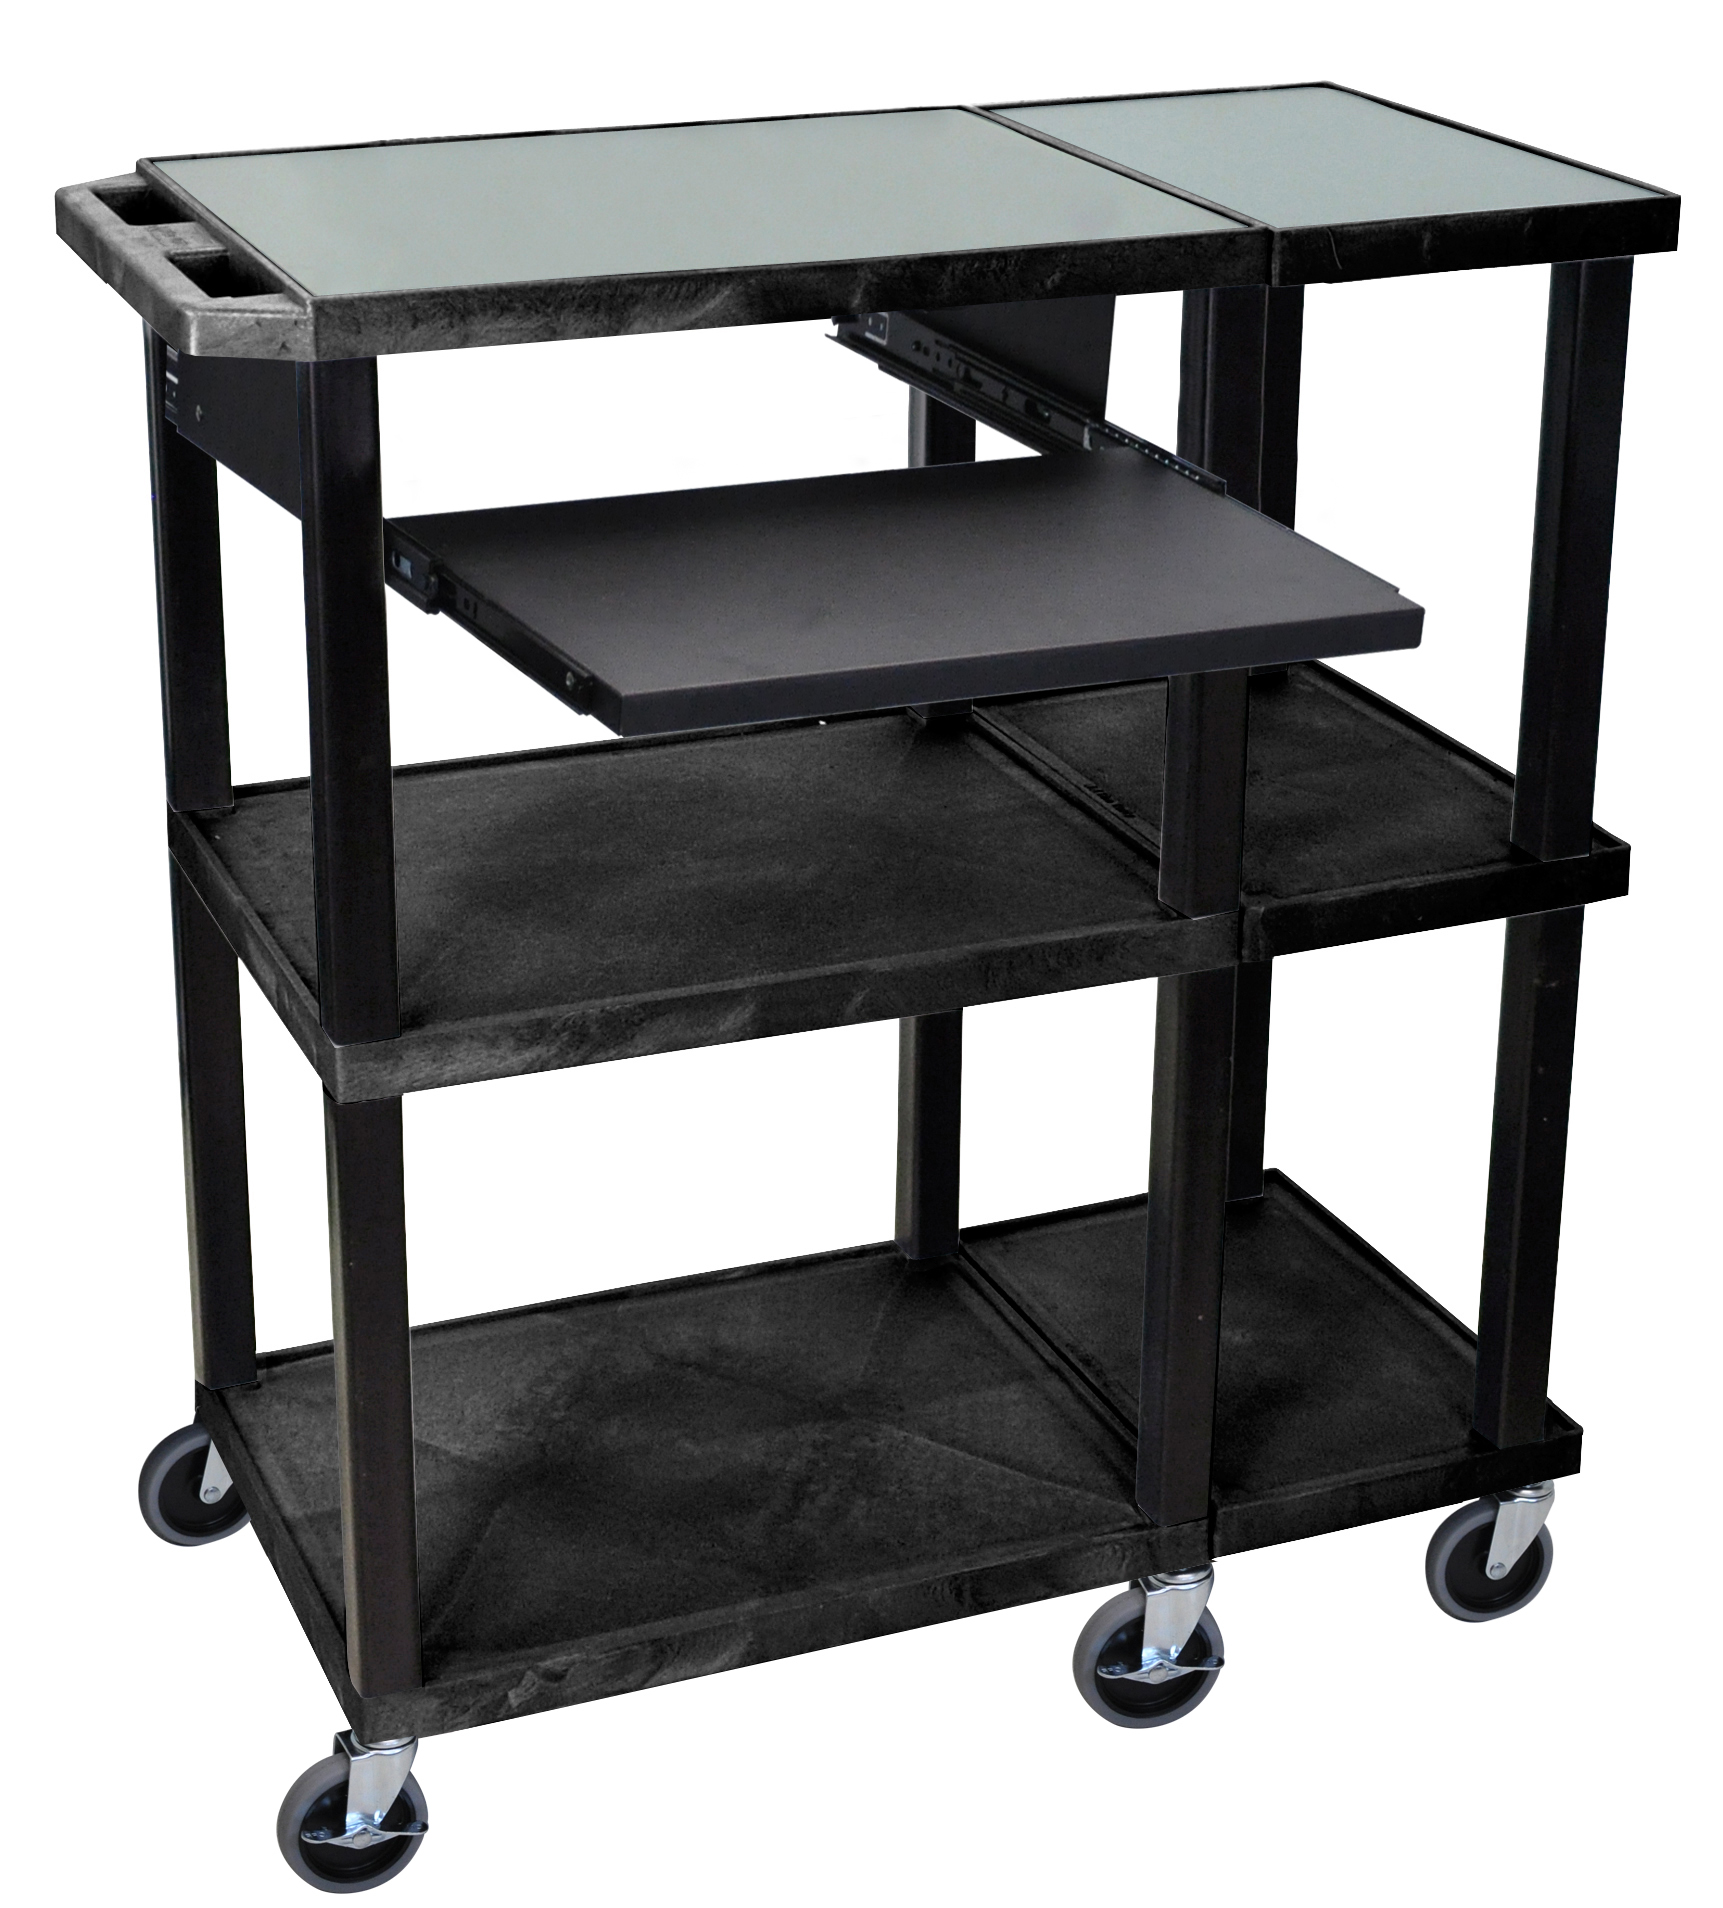 H.Wilson Home Office Mobile Computer WorkStation Rolling Organizer Cart Presentation Station With Pull Out Tray Black at Sears.com